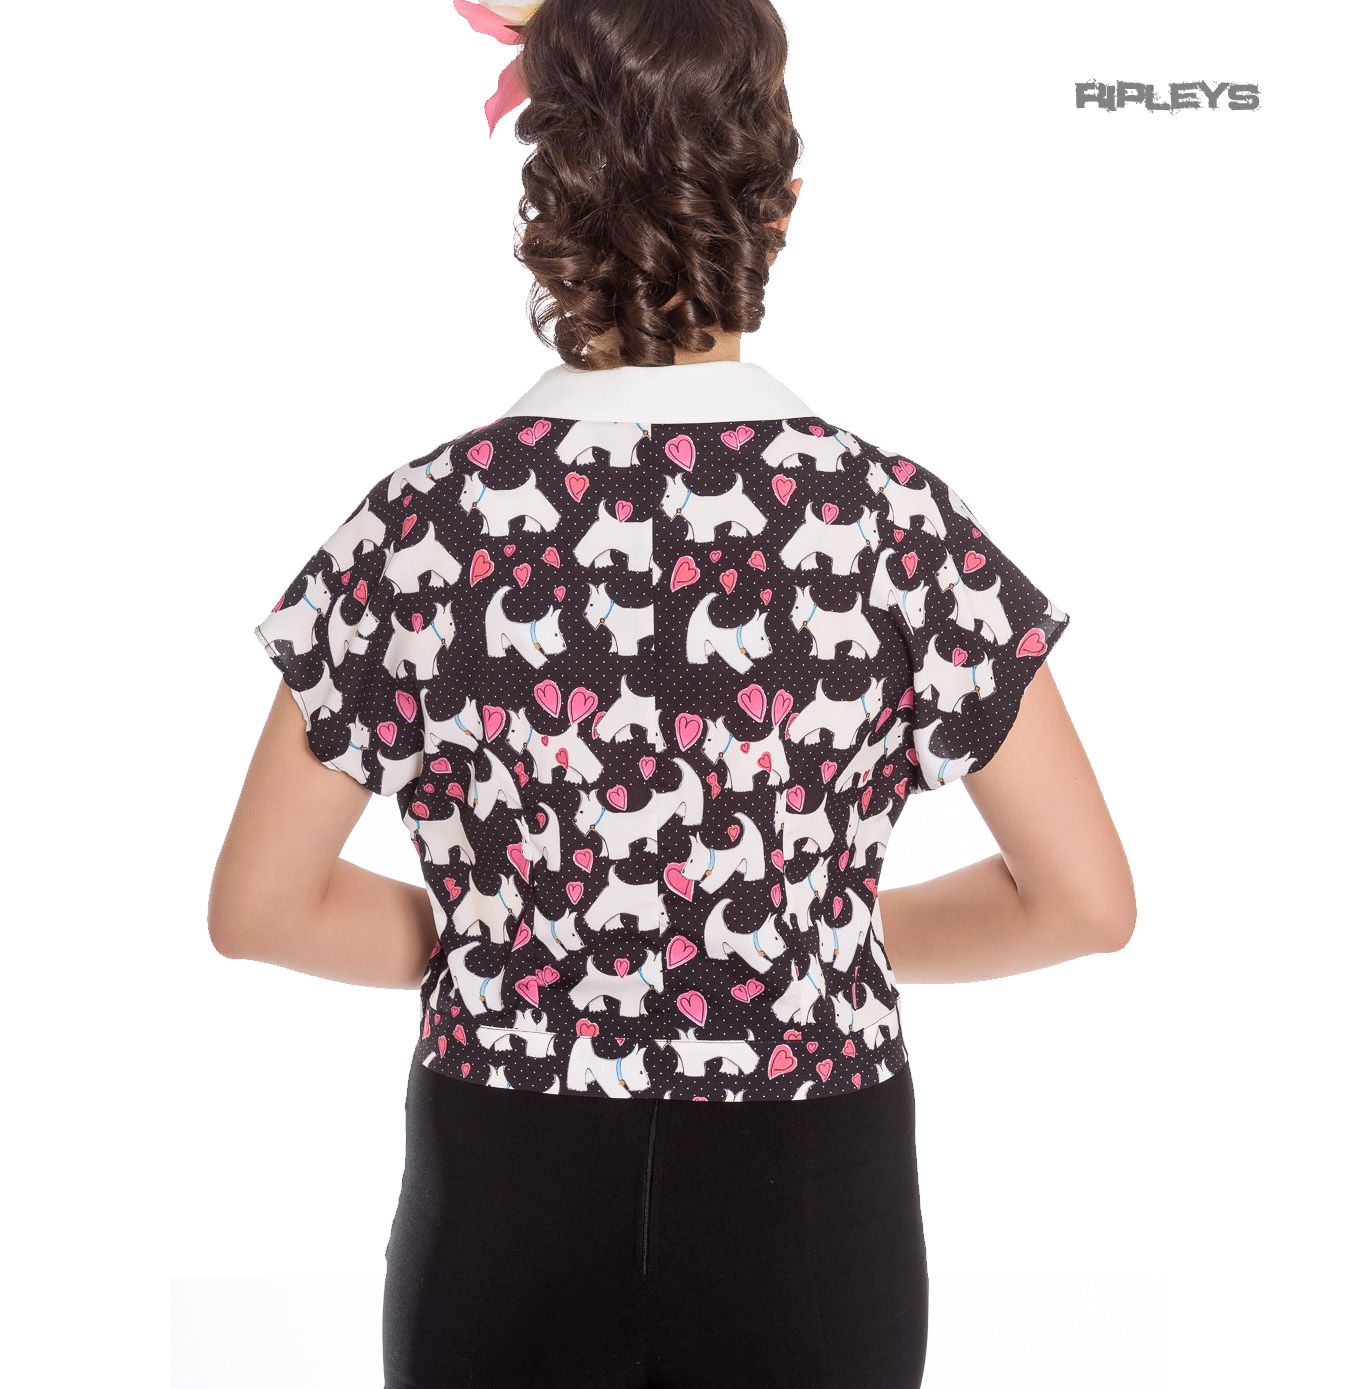 Hell-Bunny-50s-Retro-Top-Scottie-Dog-Heart-AGGY-Cropped-Blouse-Shirt-All-Sizes thumbnail 12